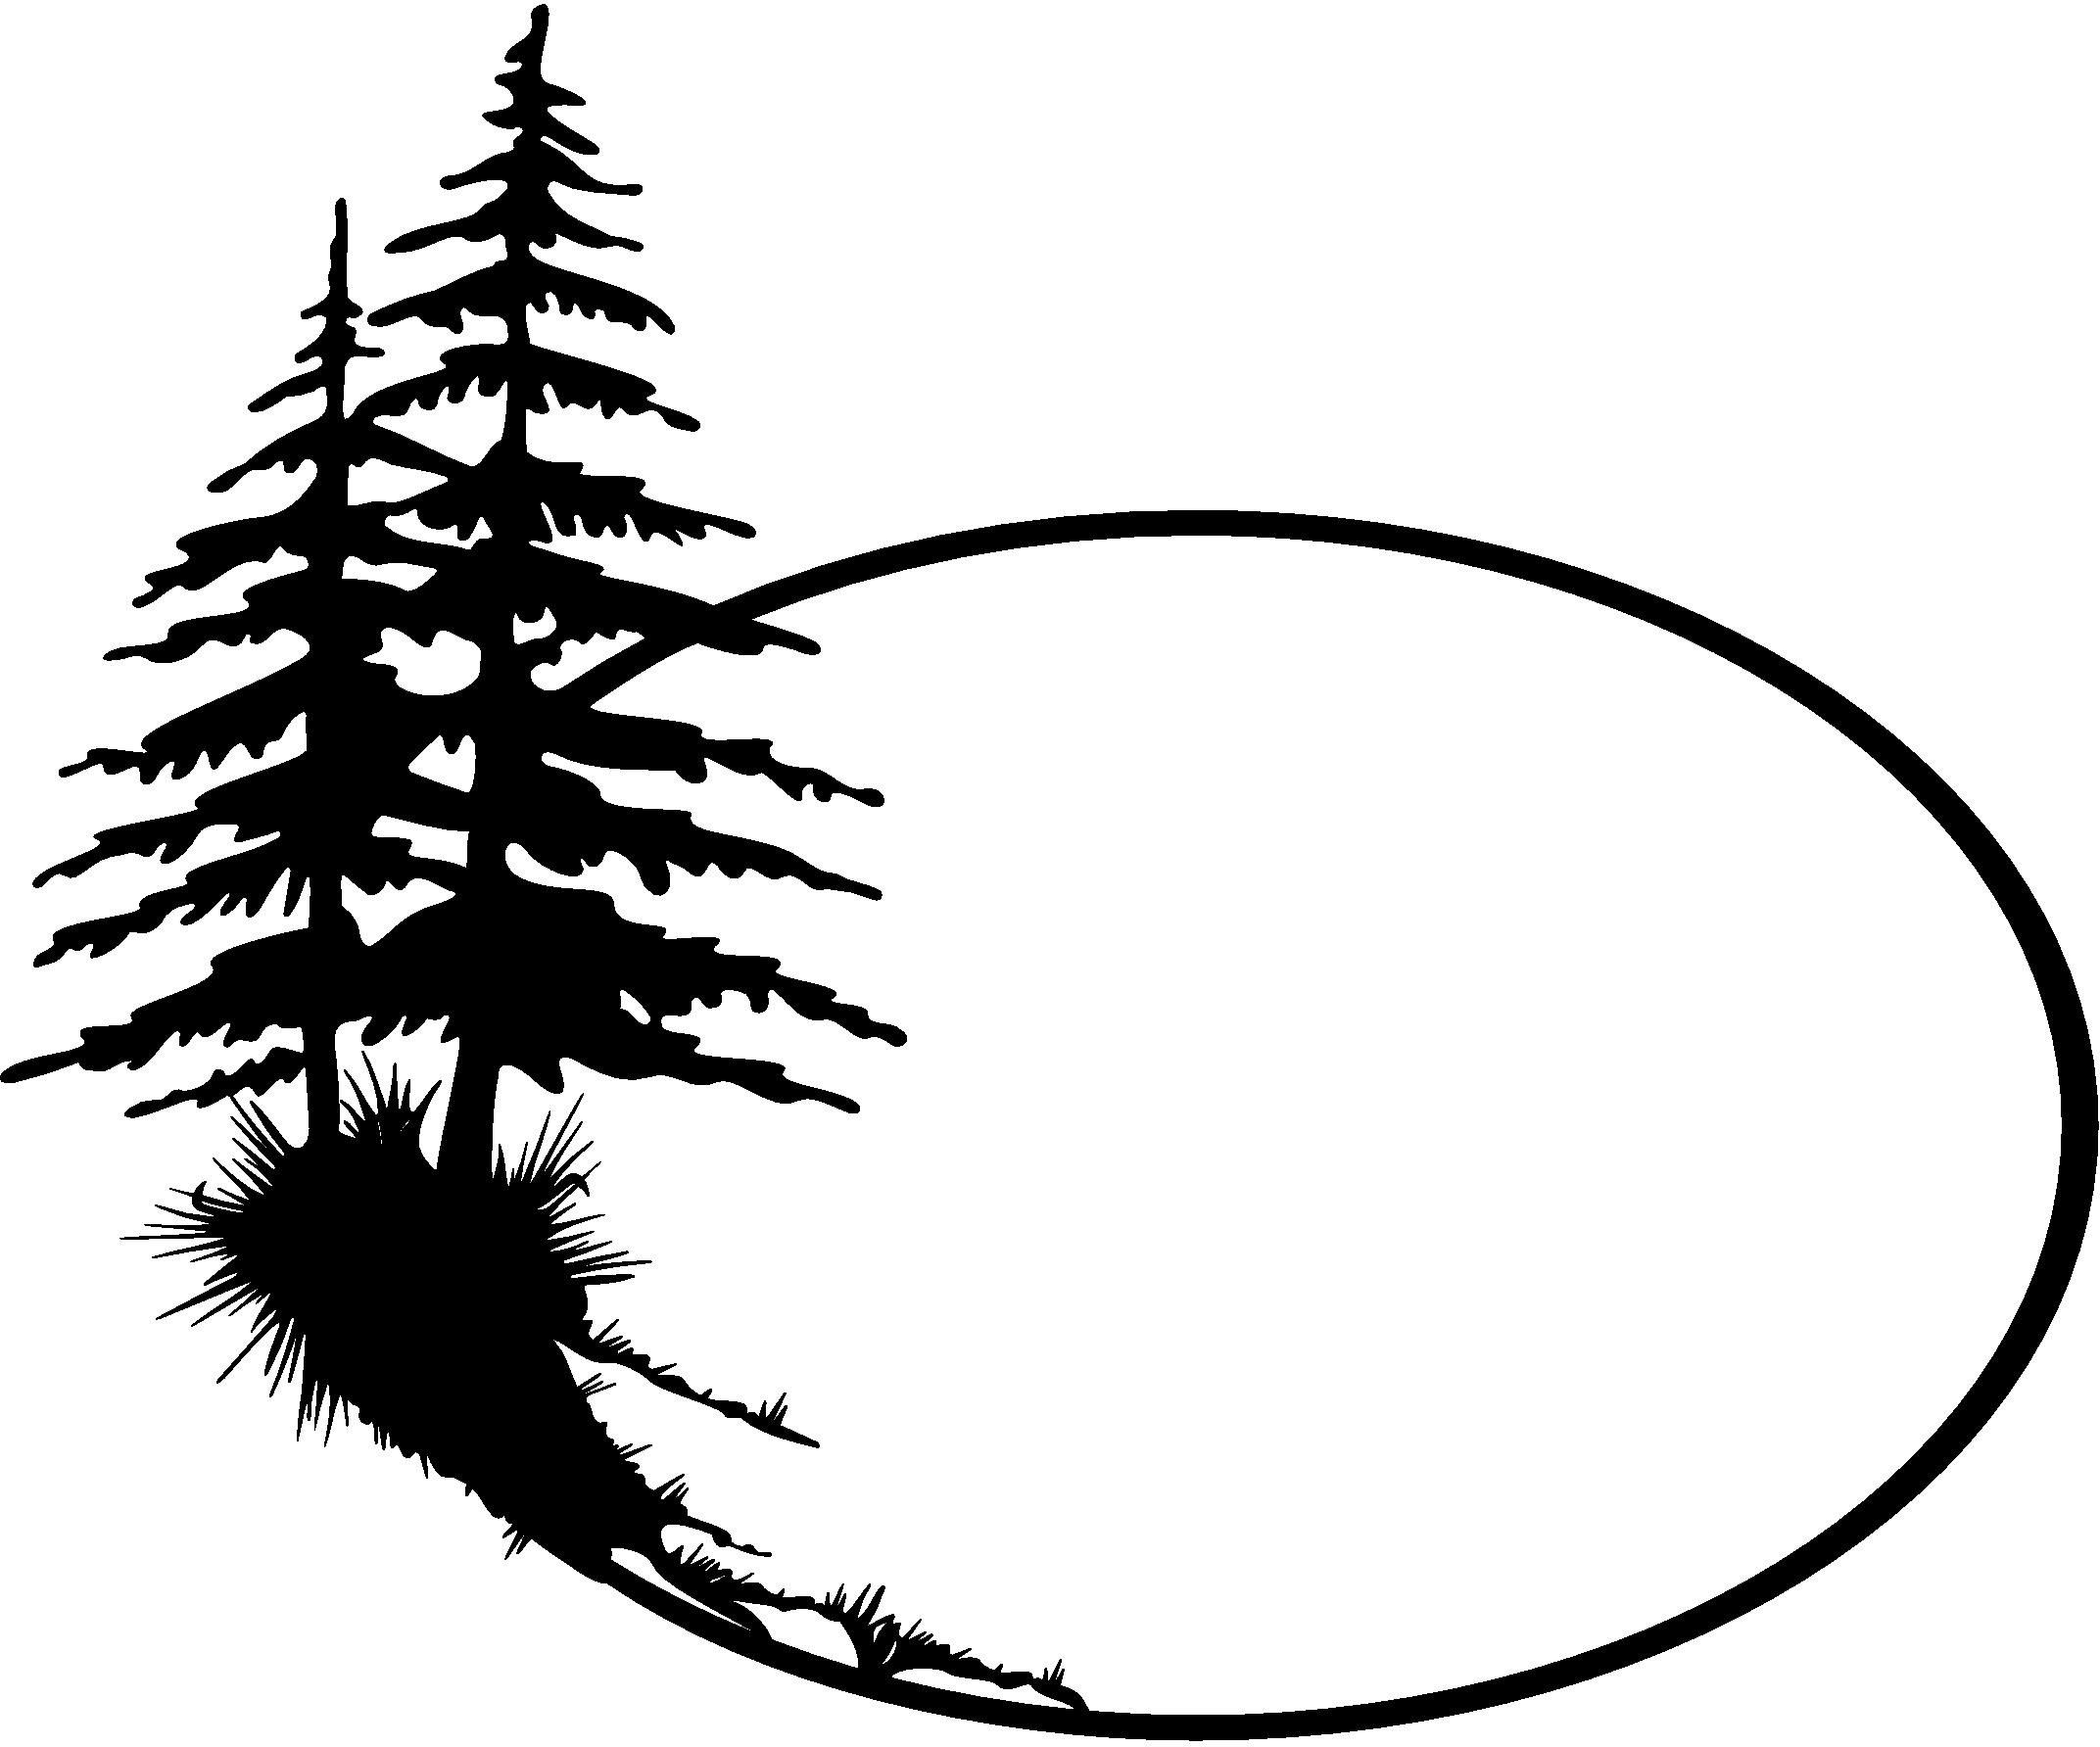 hight resolution of pine tree silhouette clip art clipart pine